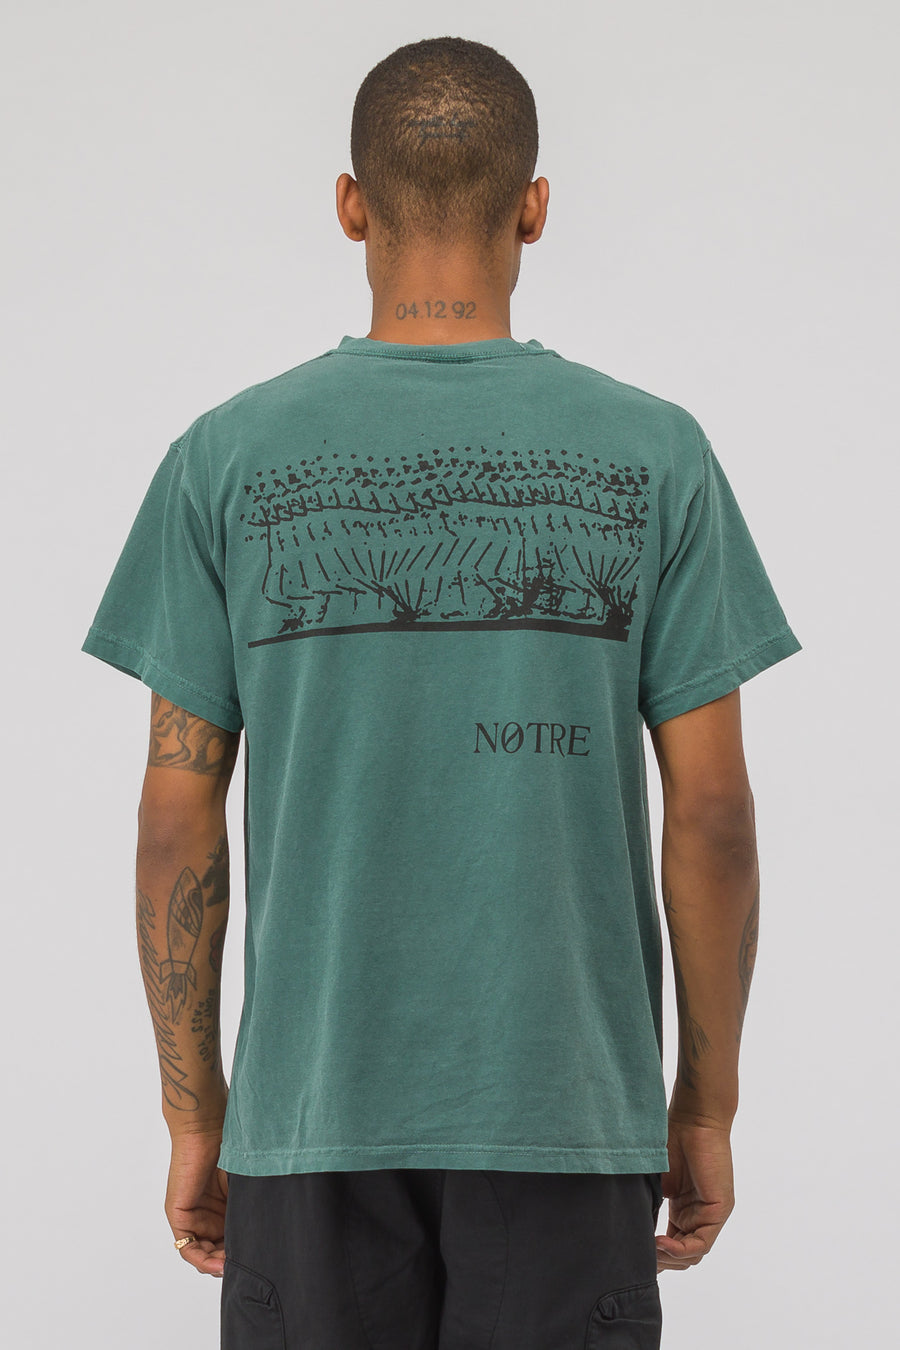 Notre x Nike Stride Graphic Short Sleeve T-Shirt in Green - Notre